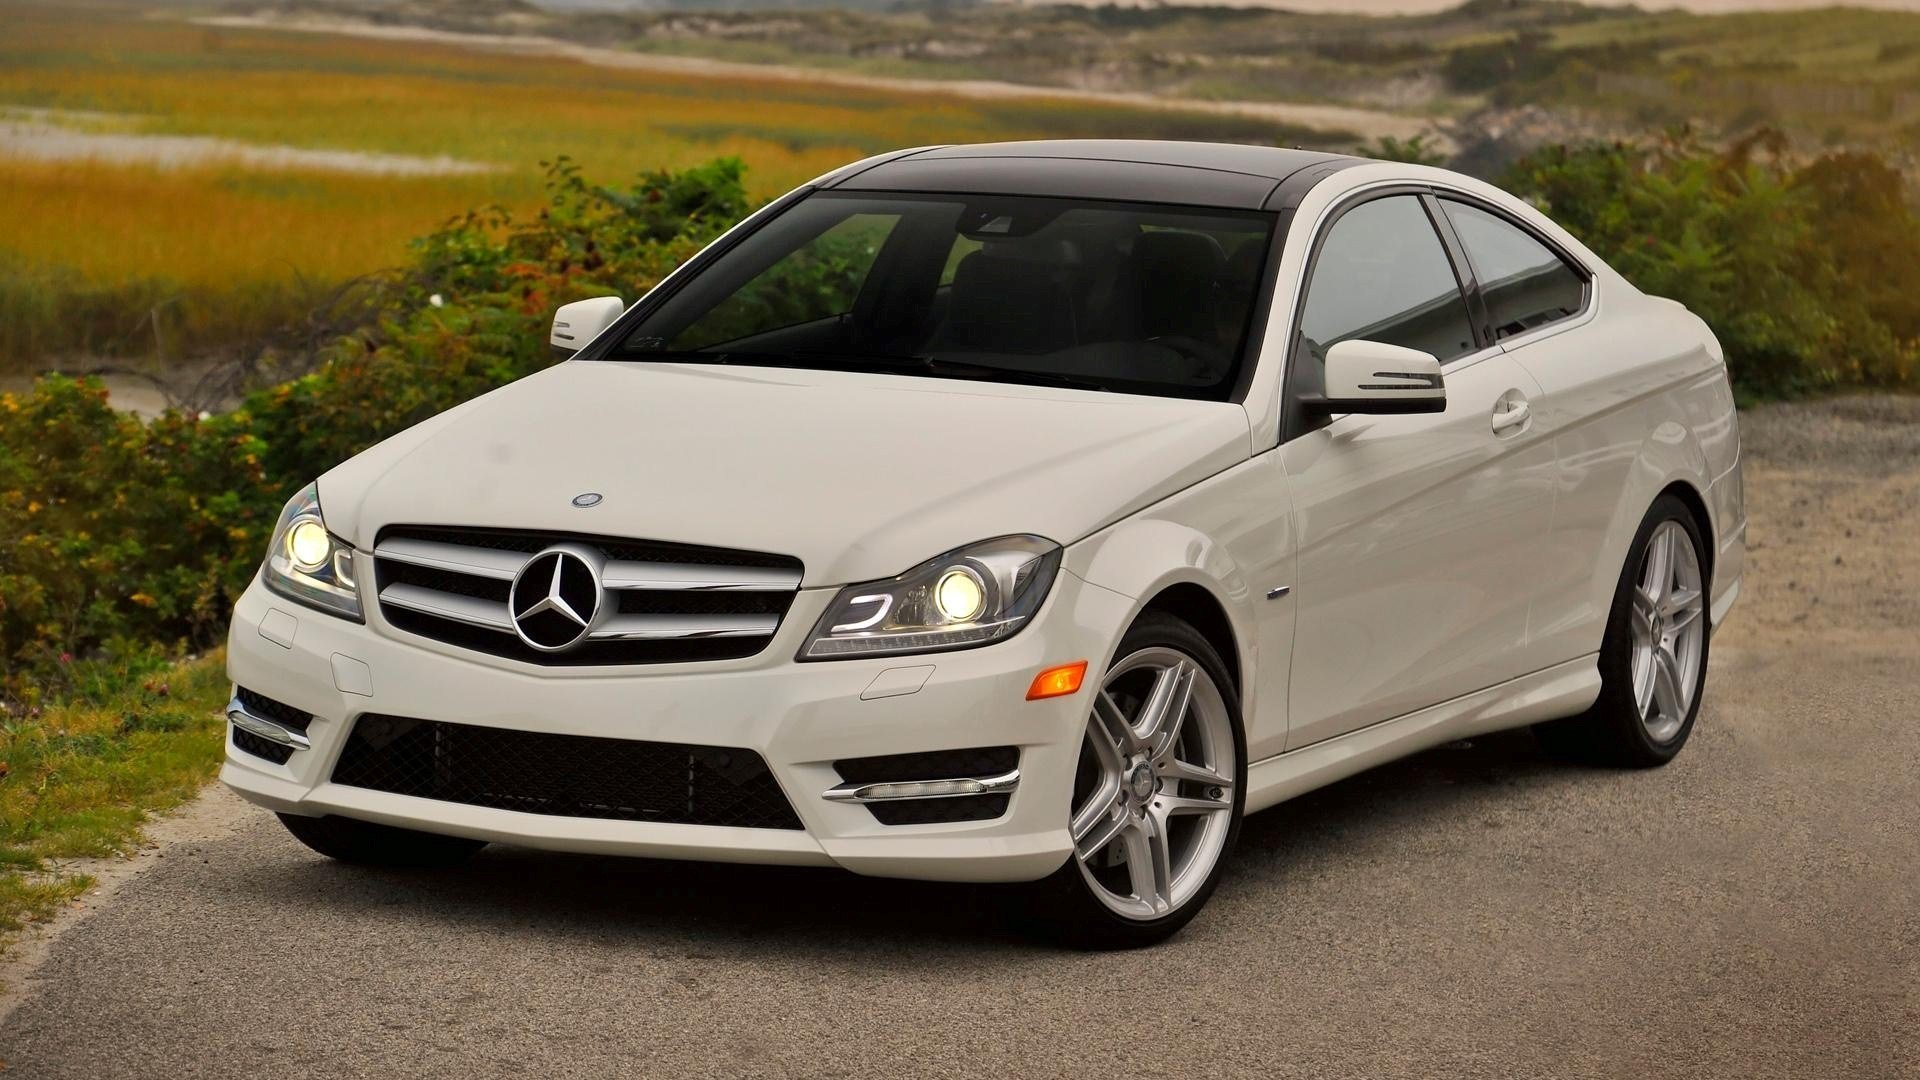 Latest White Mercedes Benz C350 Coupe C Class Car Wallpaper Hd Free Download